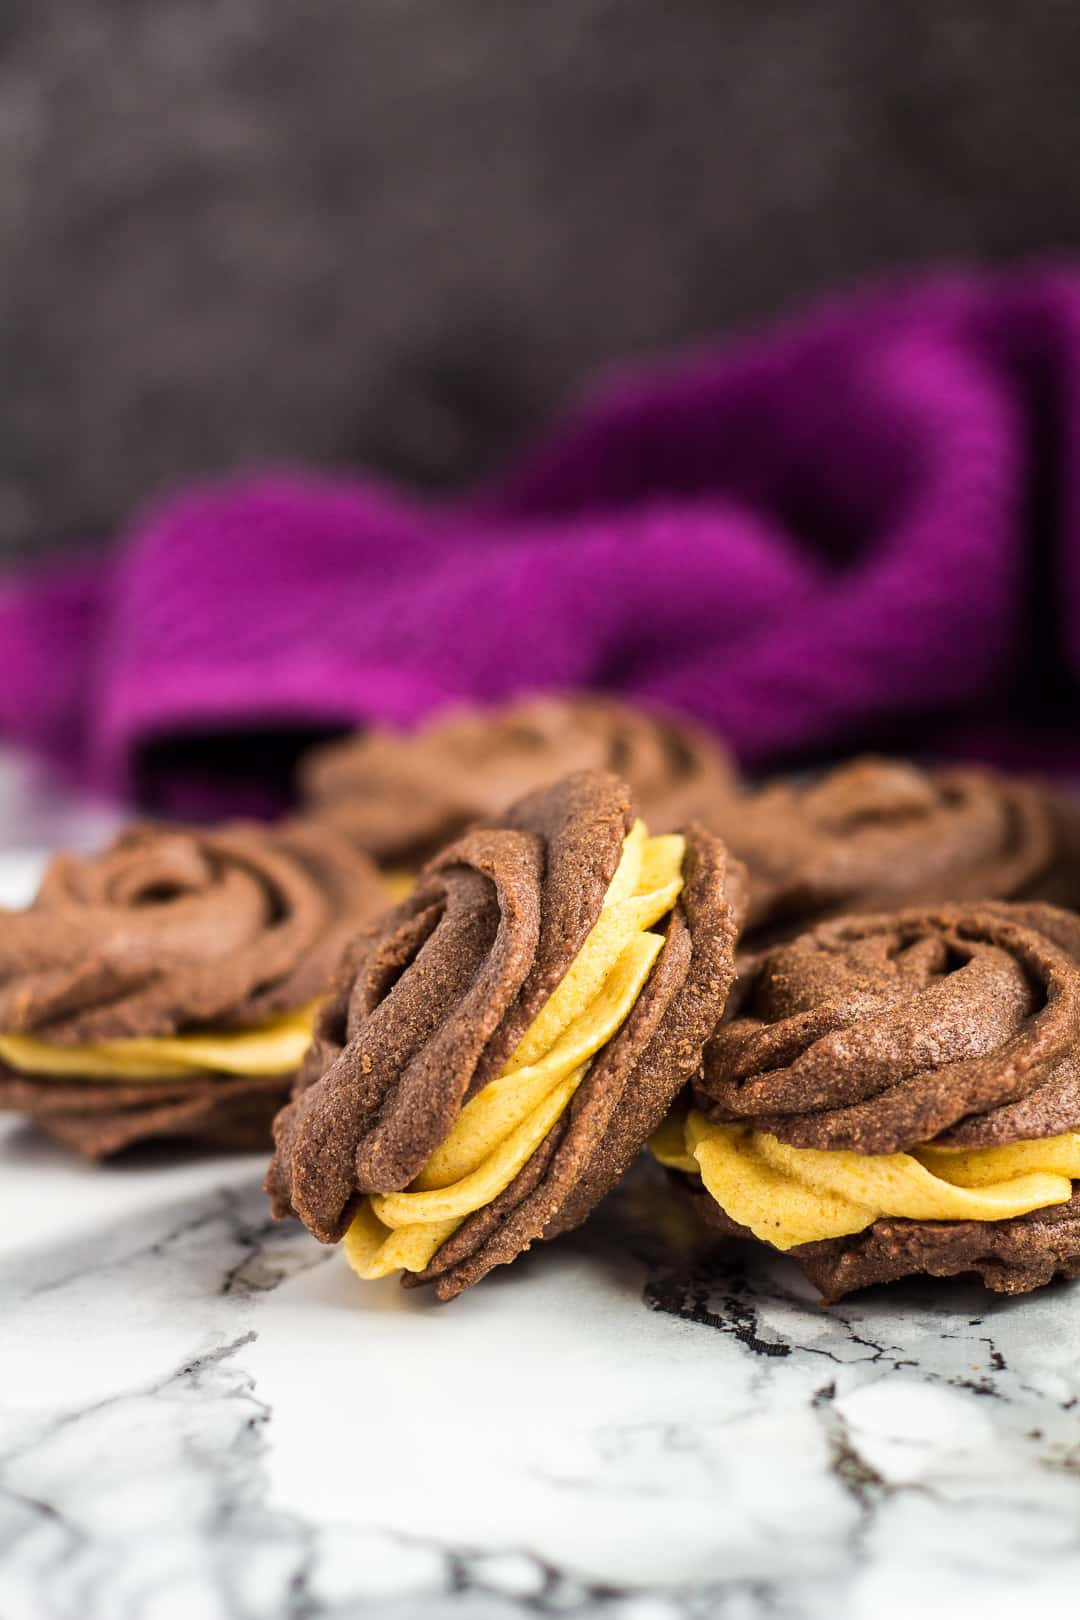 A pile of chocolate Viennese whirls filled with pumpkin buttercream.